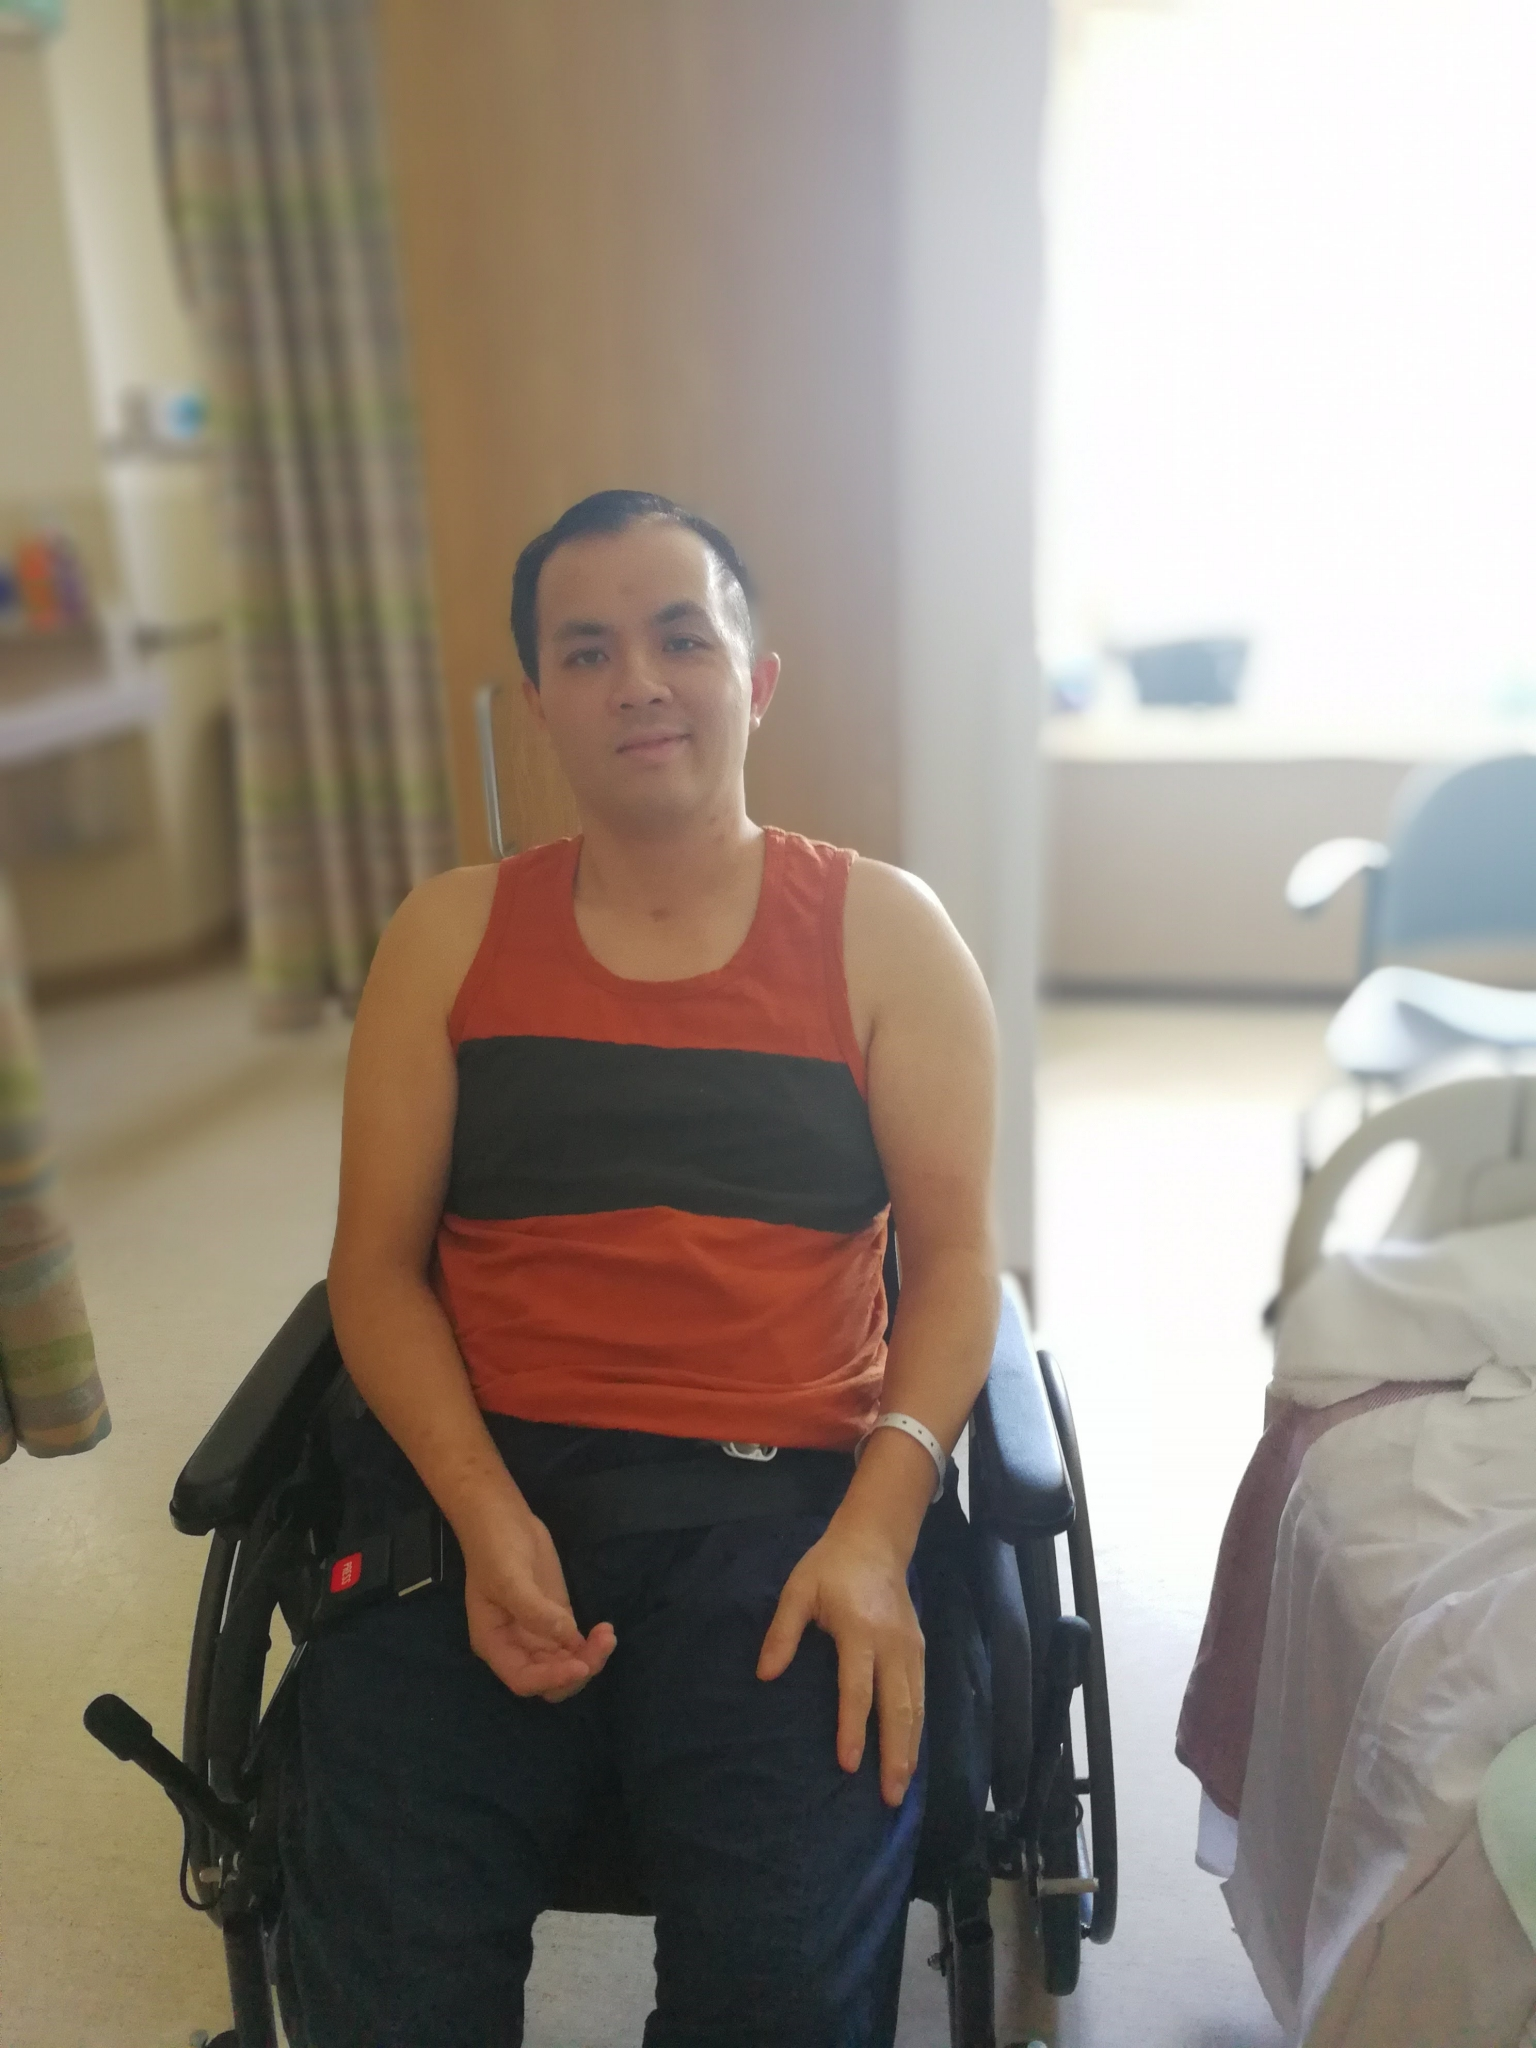 Man in a wheelchair inside a hospital room